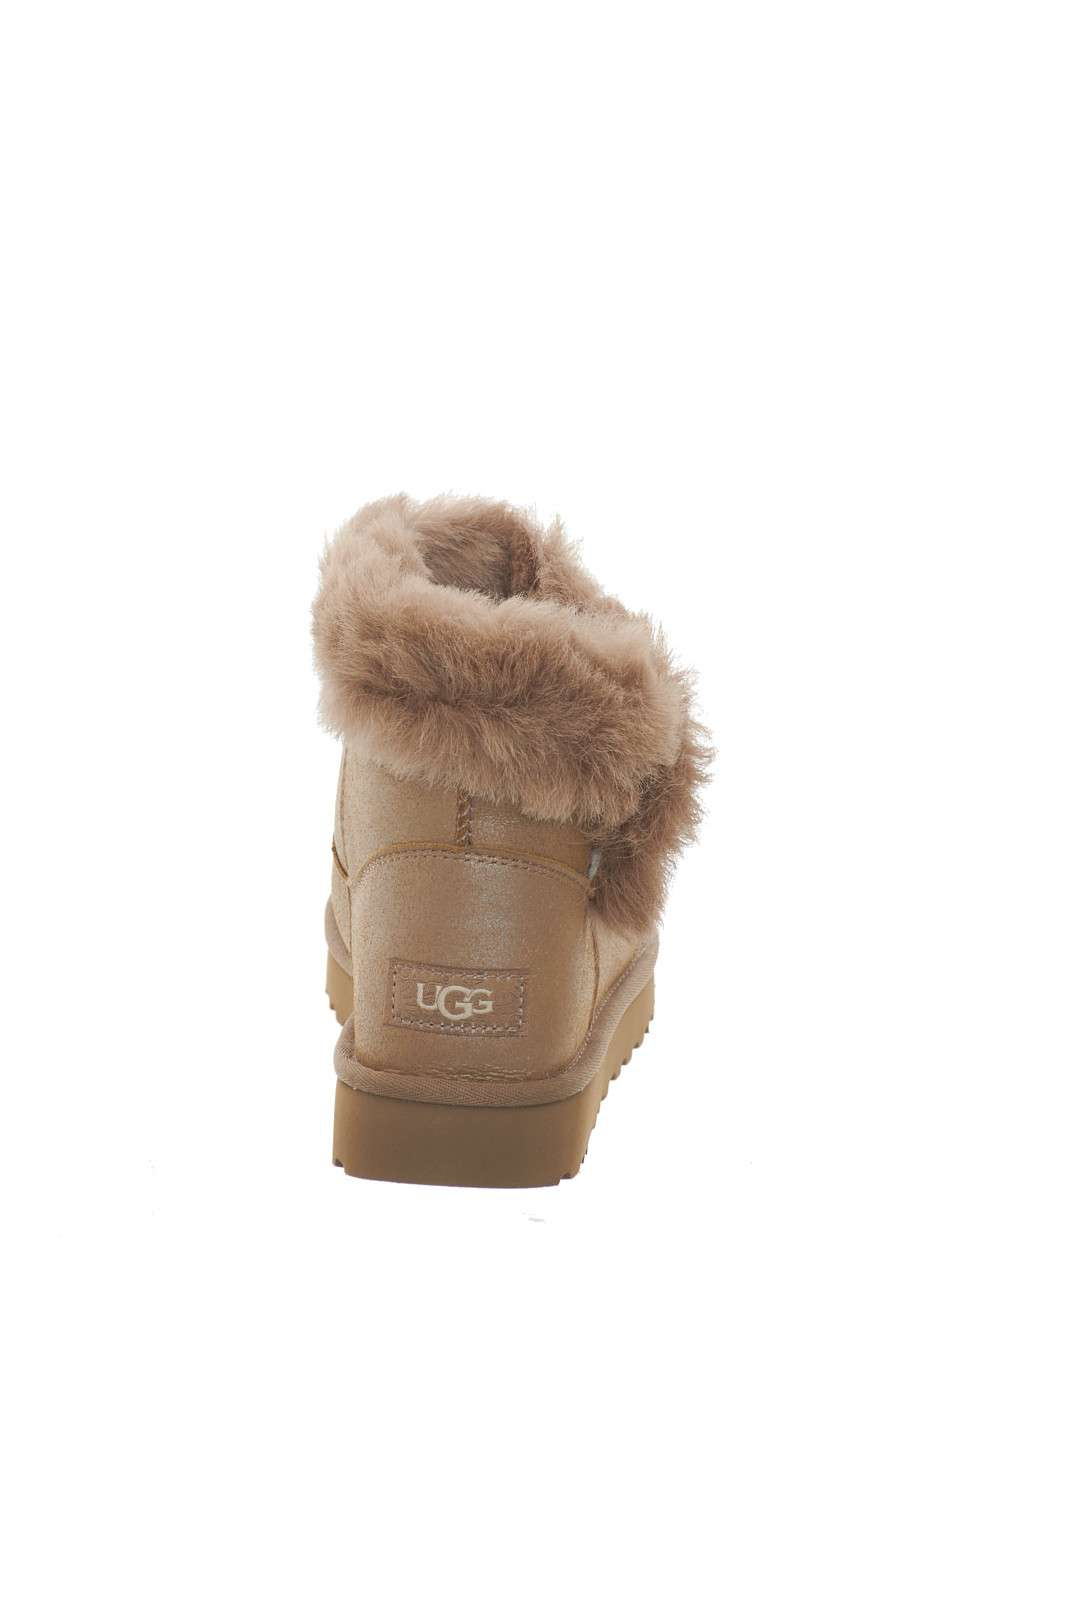 https://www.parmax.com/media/catalog/product/a/i/AI-outlet_parmax-scarponcini-donna-Ugg-1103761-C.jpg